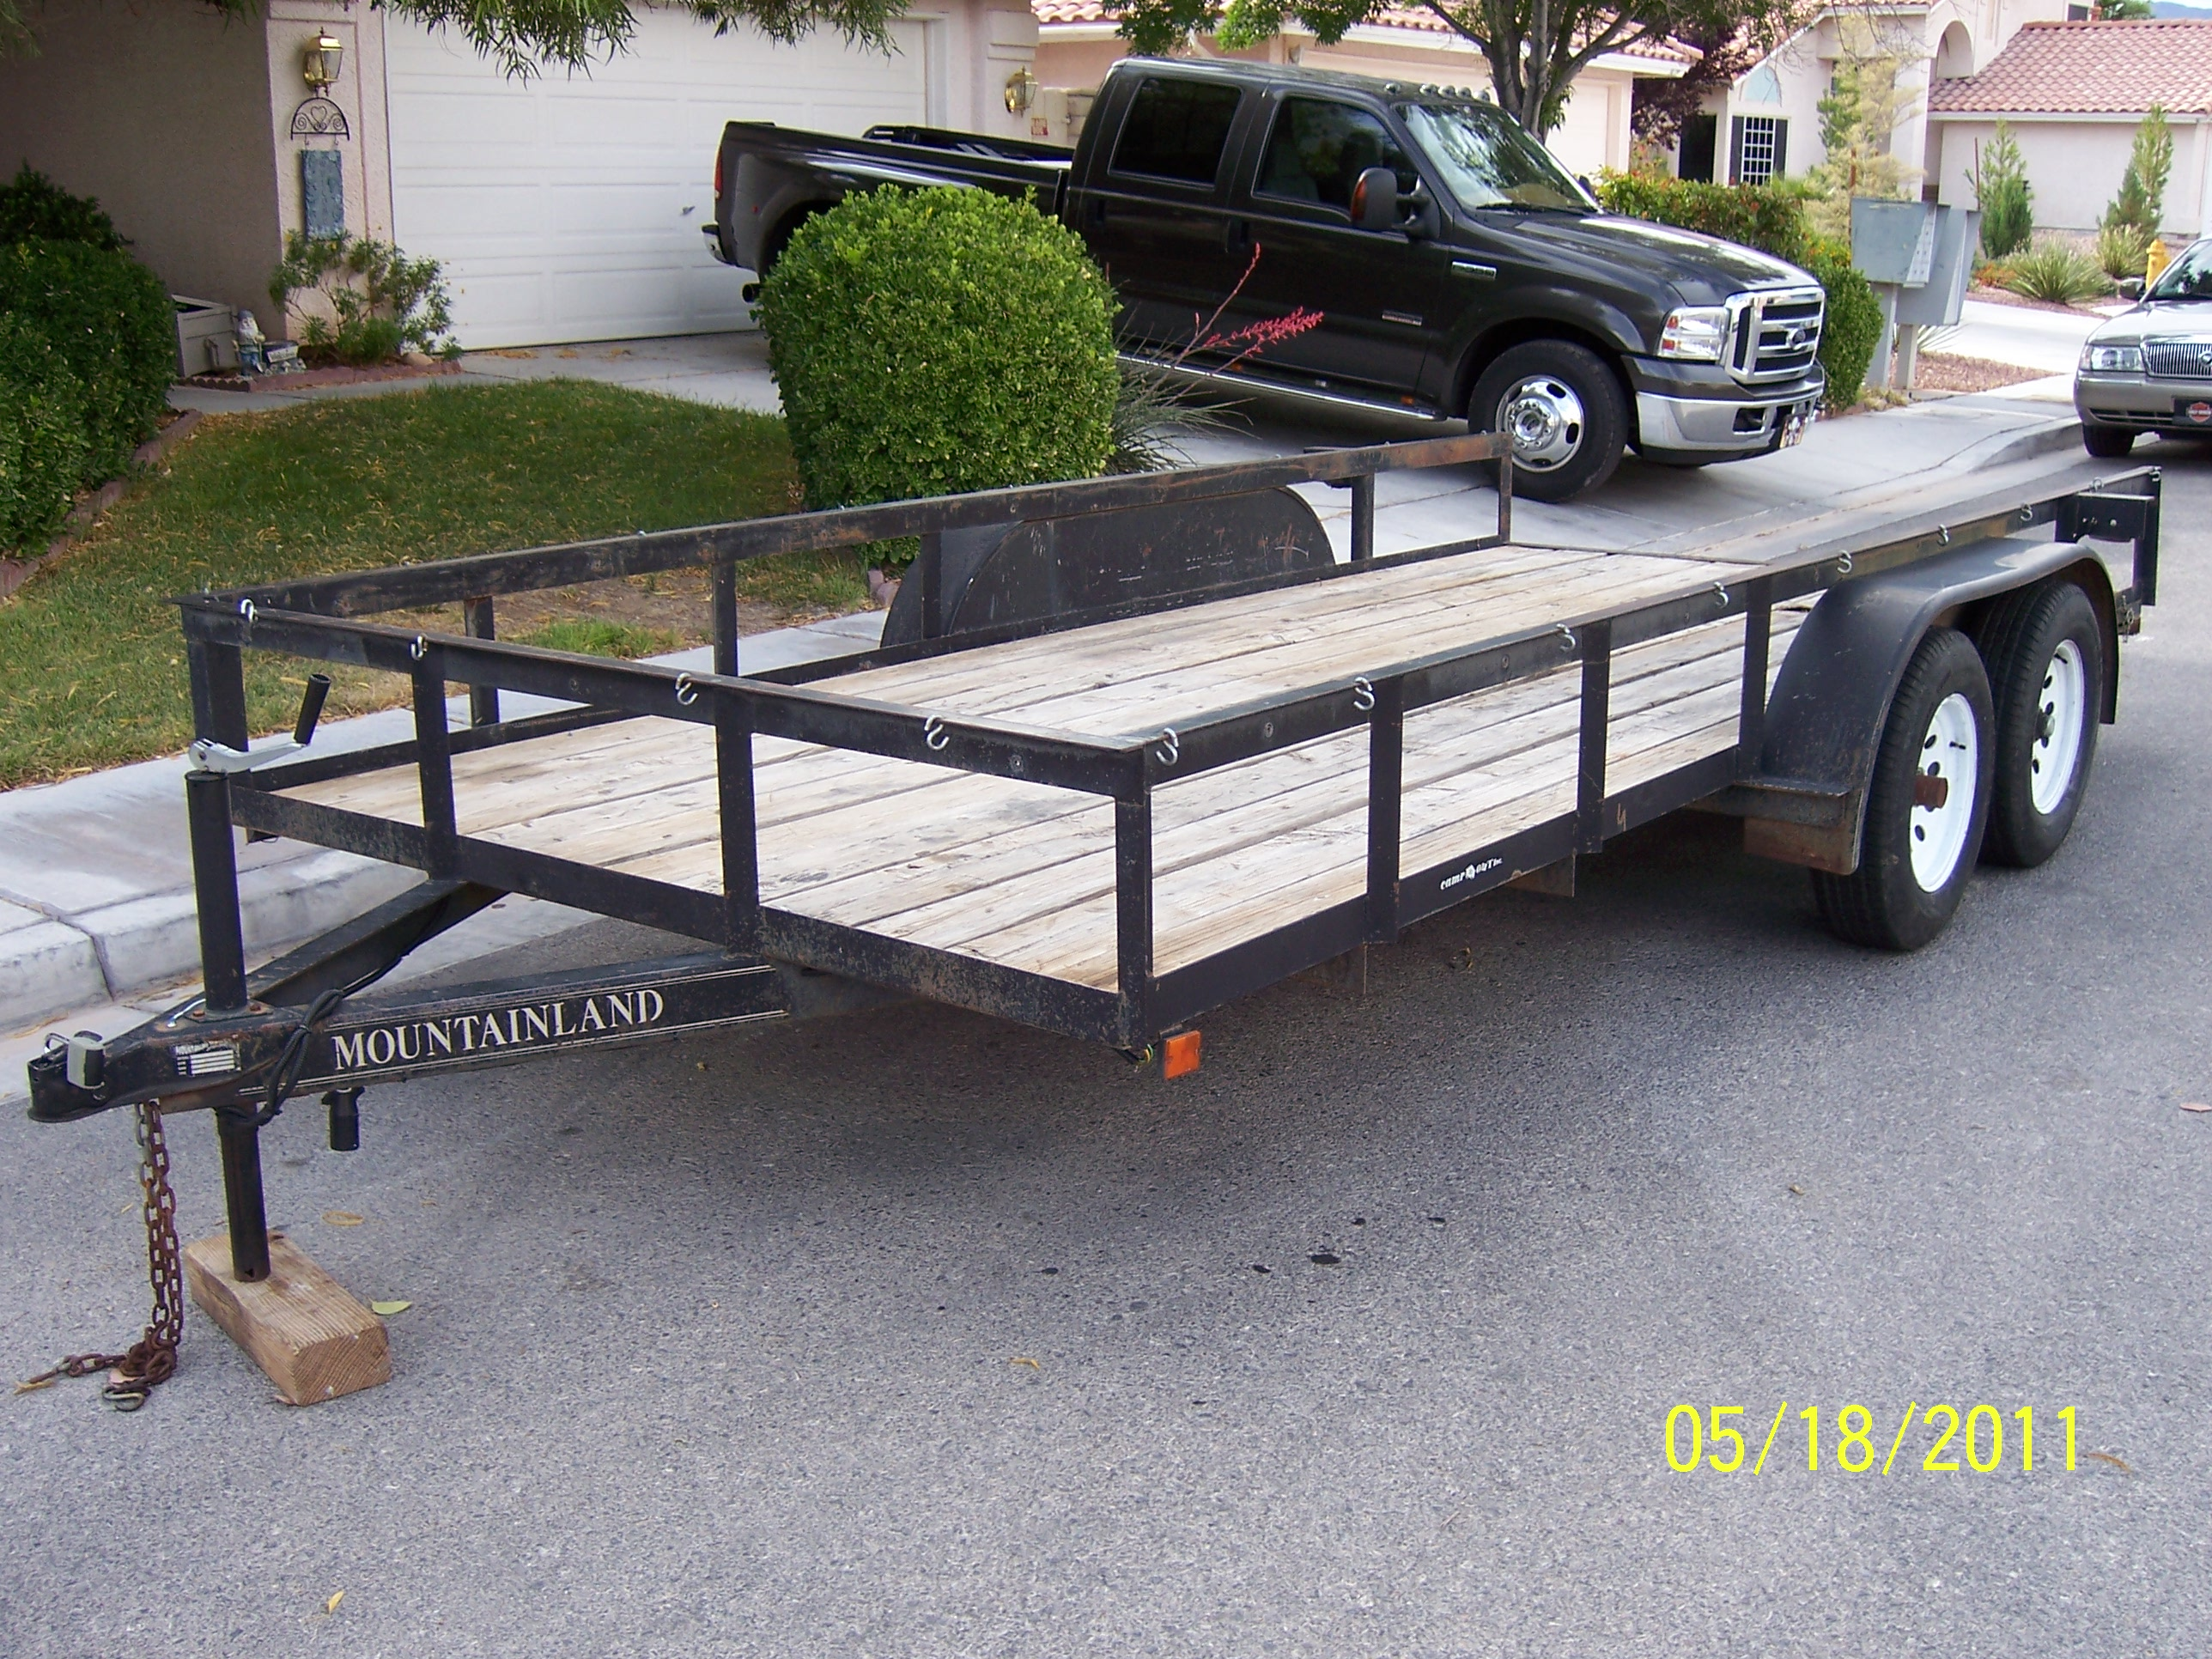 16FT. CAR/ TRAILER - RV\'s / Trailers for sale - Dumont Dune Riders